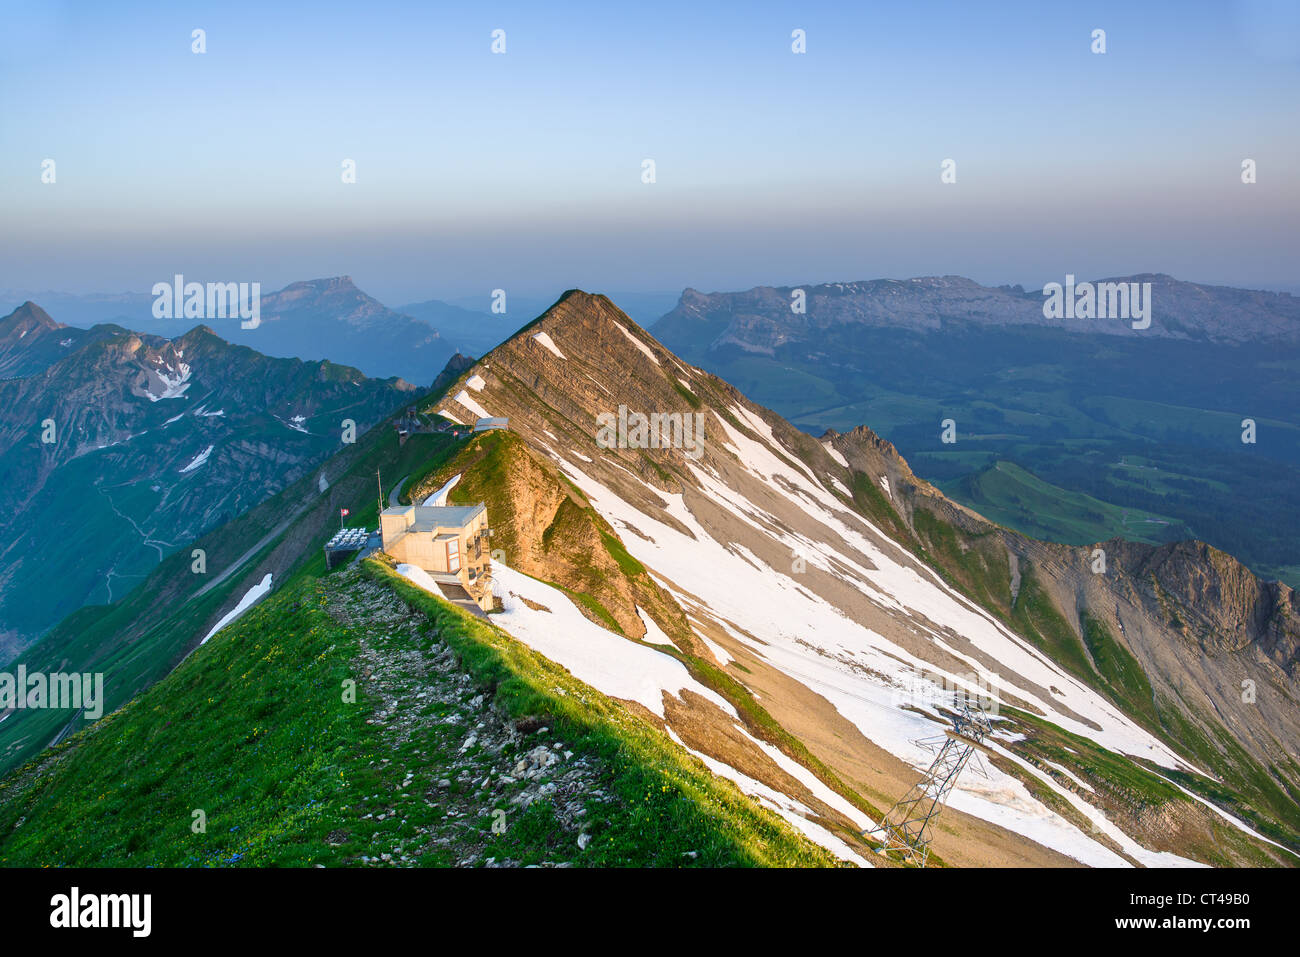 Panoramic view of mountain sunrise from Brienzer Rothorn, Berner Oberland, Switzerland - Stock Image